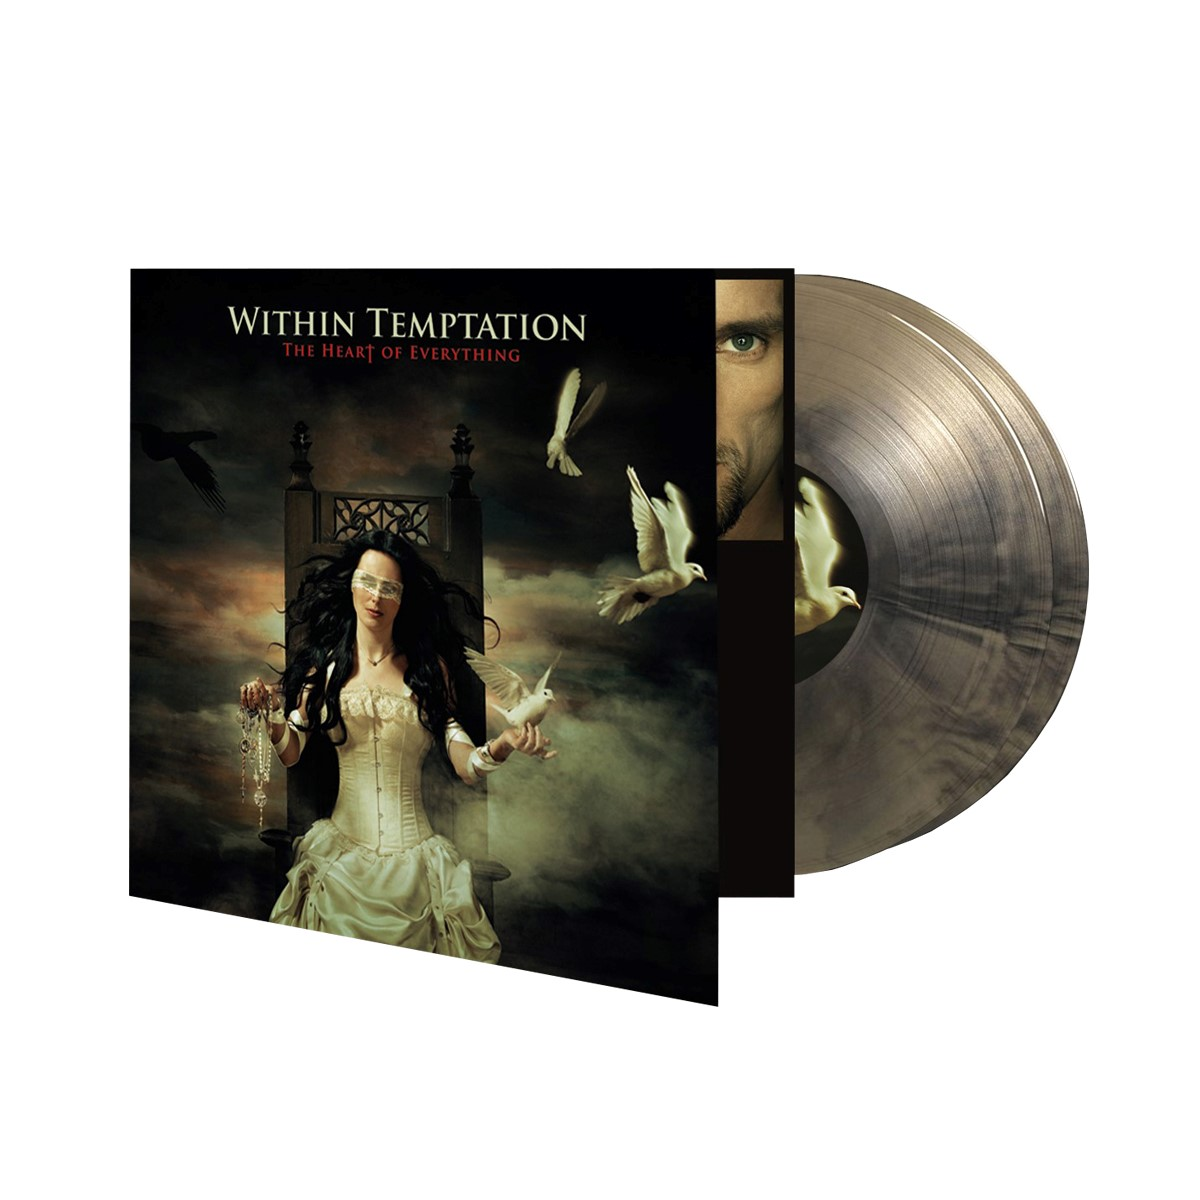 The Heart Of Everything – Limited Edition Numbered Gold & Black Swirl Double Vinyl - Within Temptation